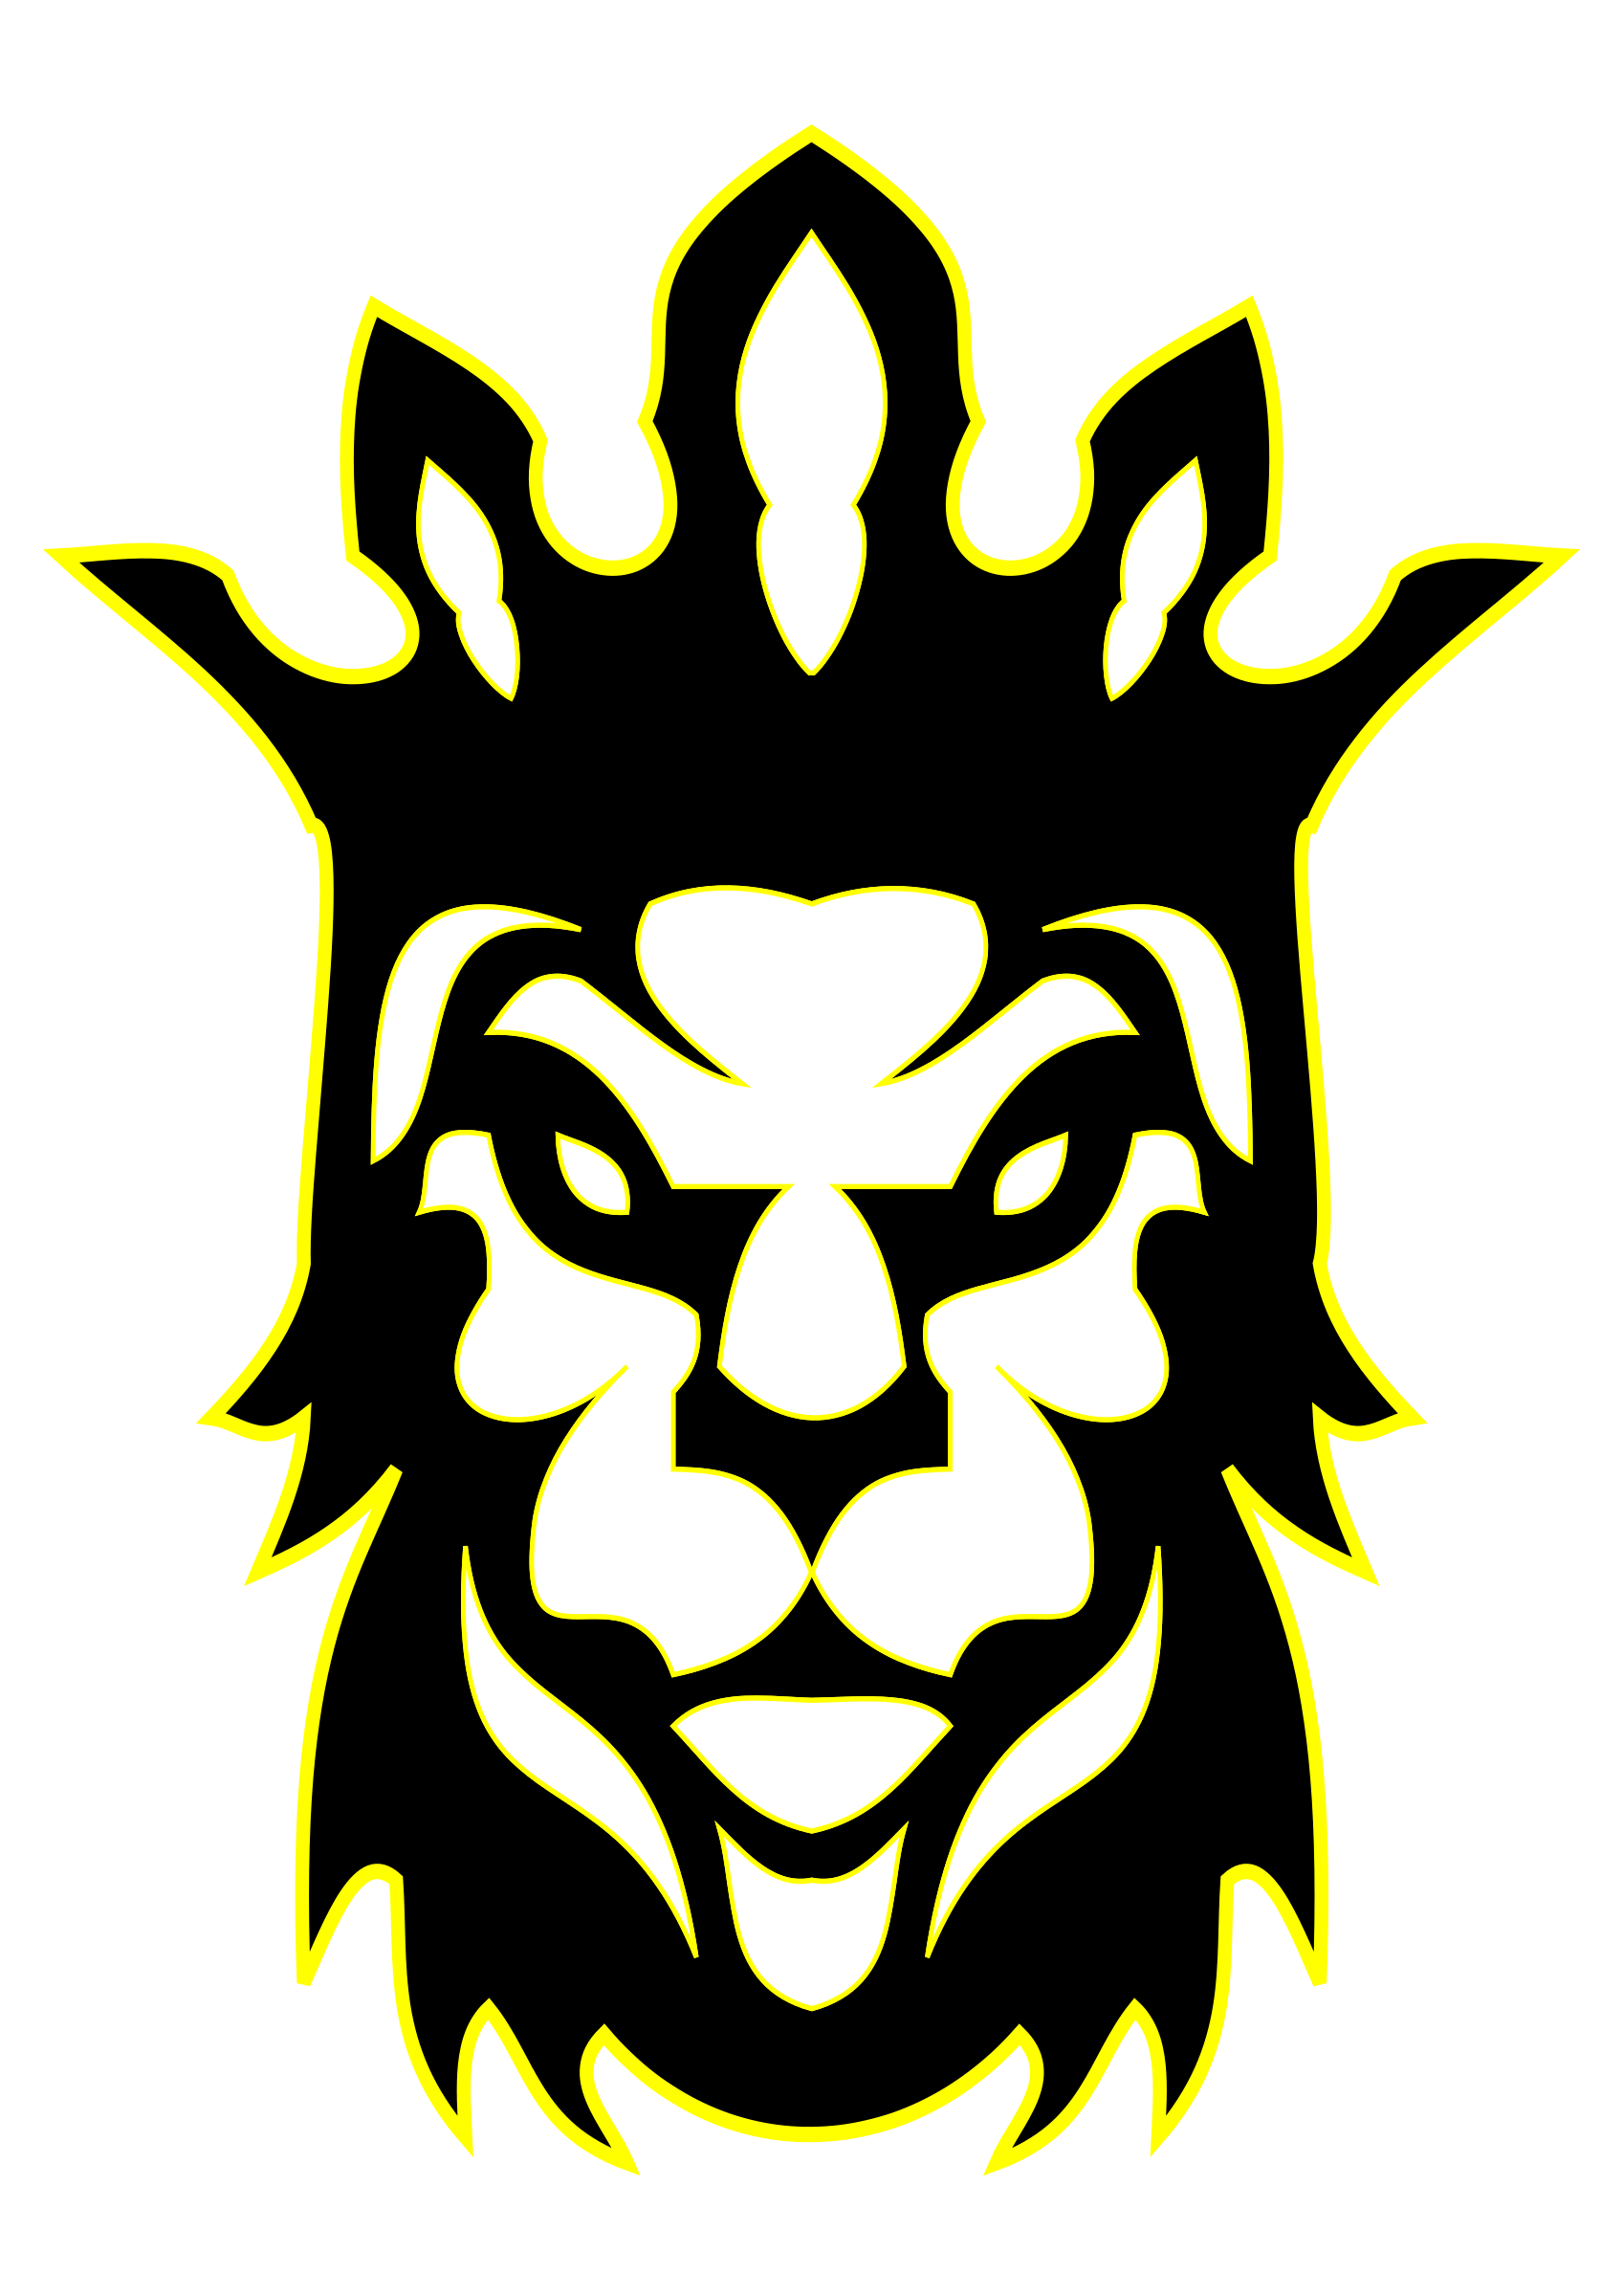 This Free Icons Png Design Of The Lion As A King PlusPng.com  - Lion King PNG Black And White